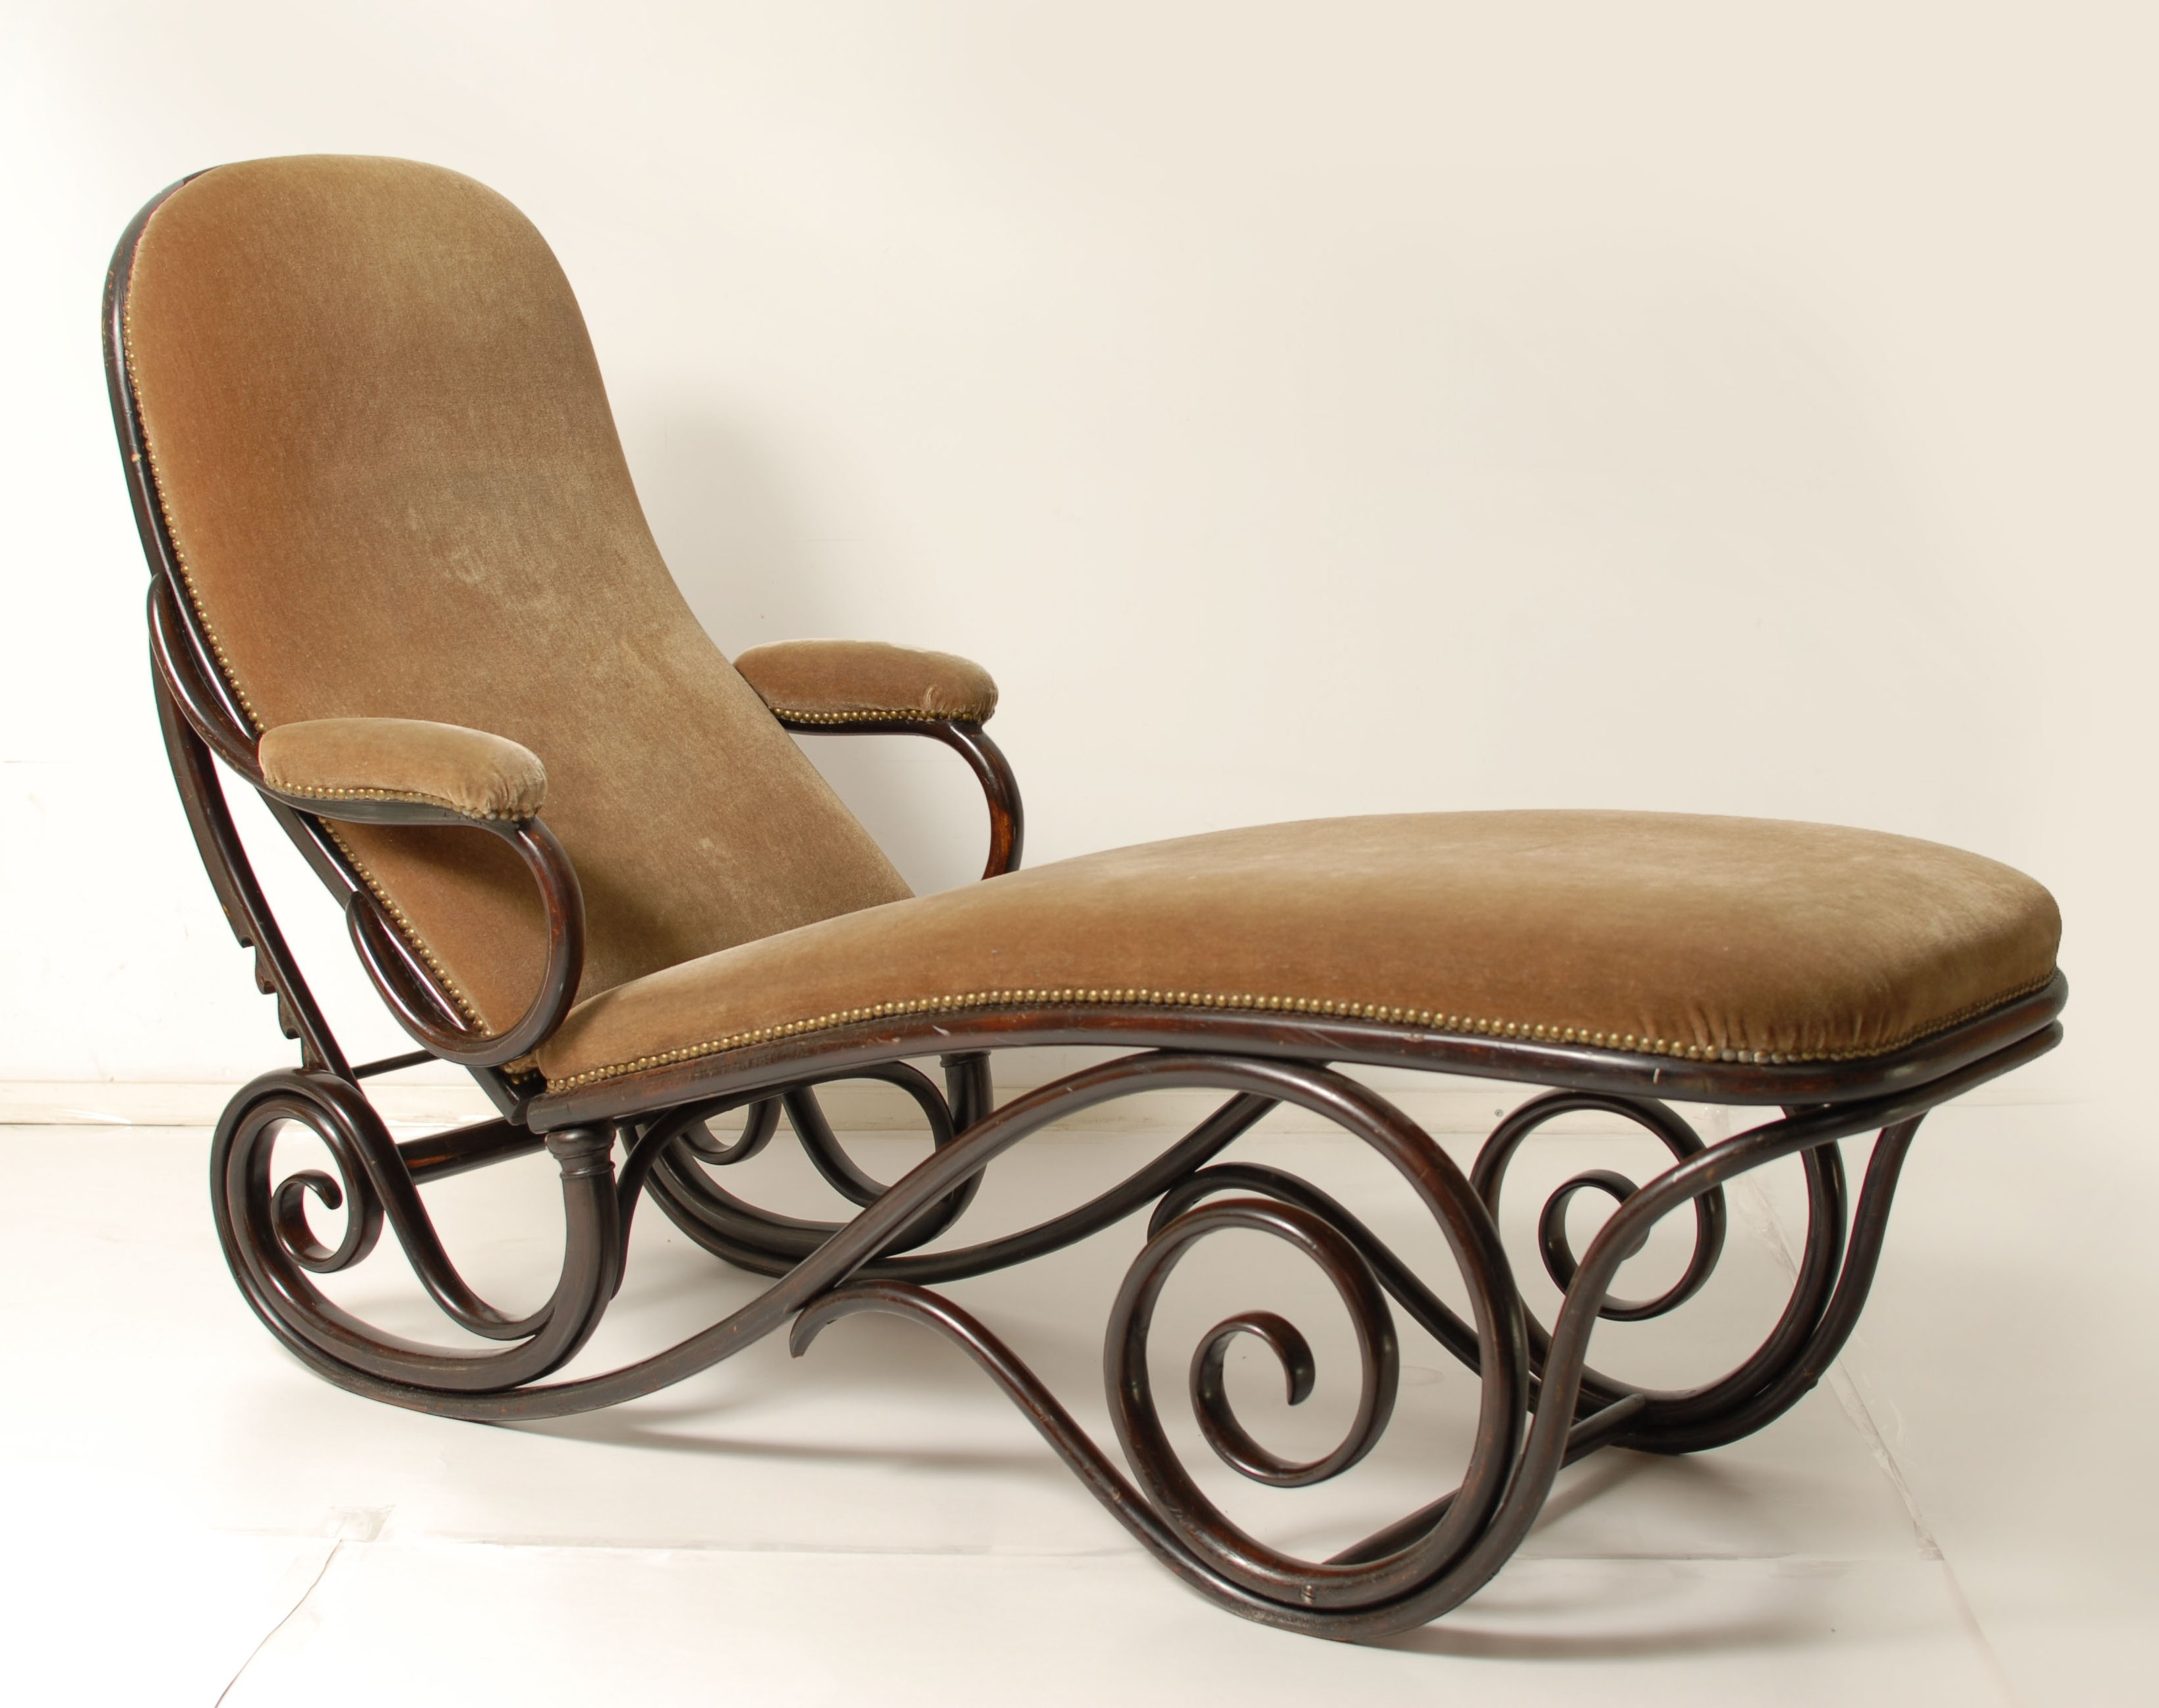 bentwood chaise lounge lounge chair by michael thonet for thonet 57655. Black Bedroom Furniture Sets. Home Design Ideas